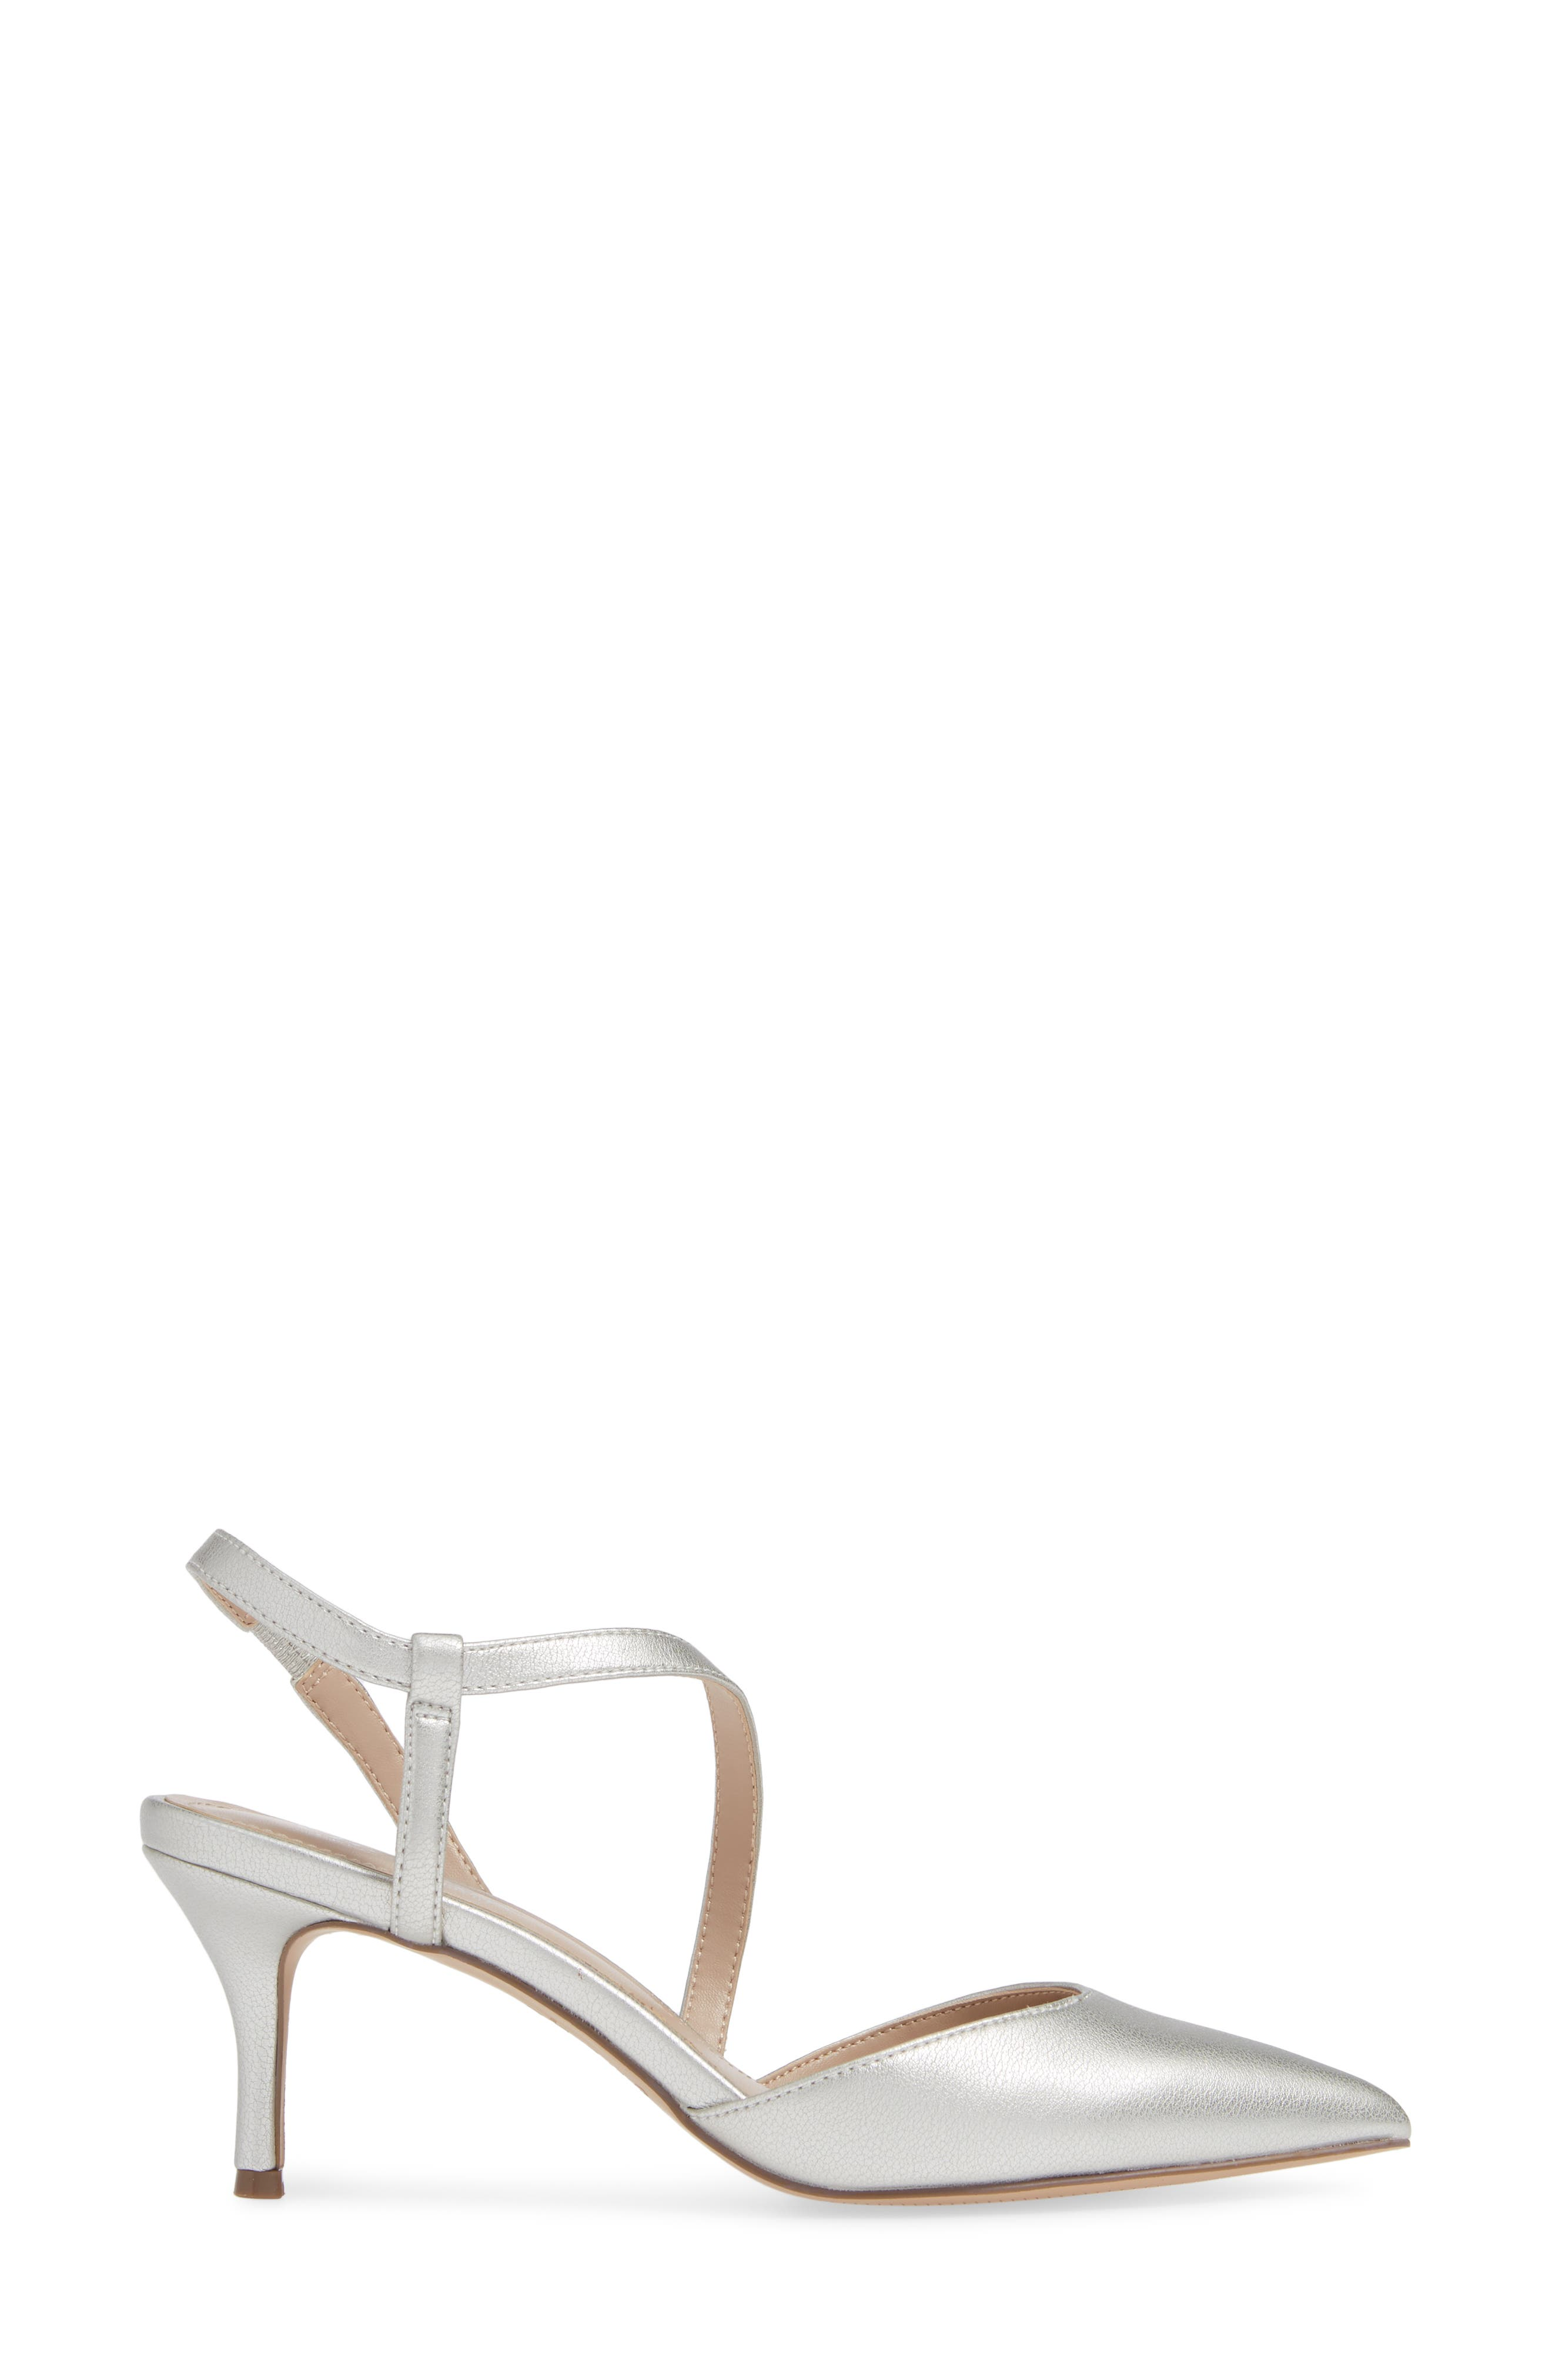 CHARLES BY CHARLES DAVID, Alda Pump, Alternate thumbnail 3, color, SILVER FAUX LEATHER